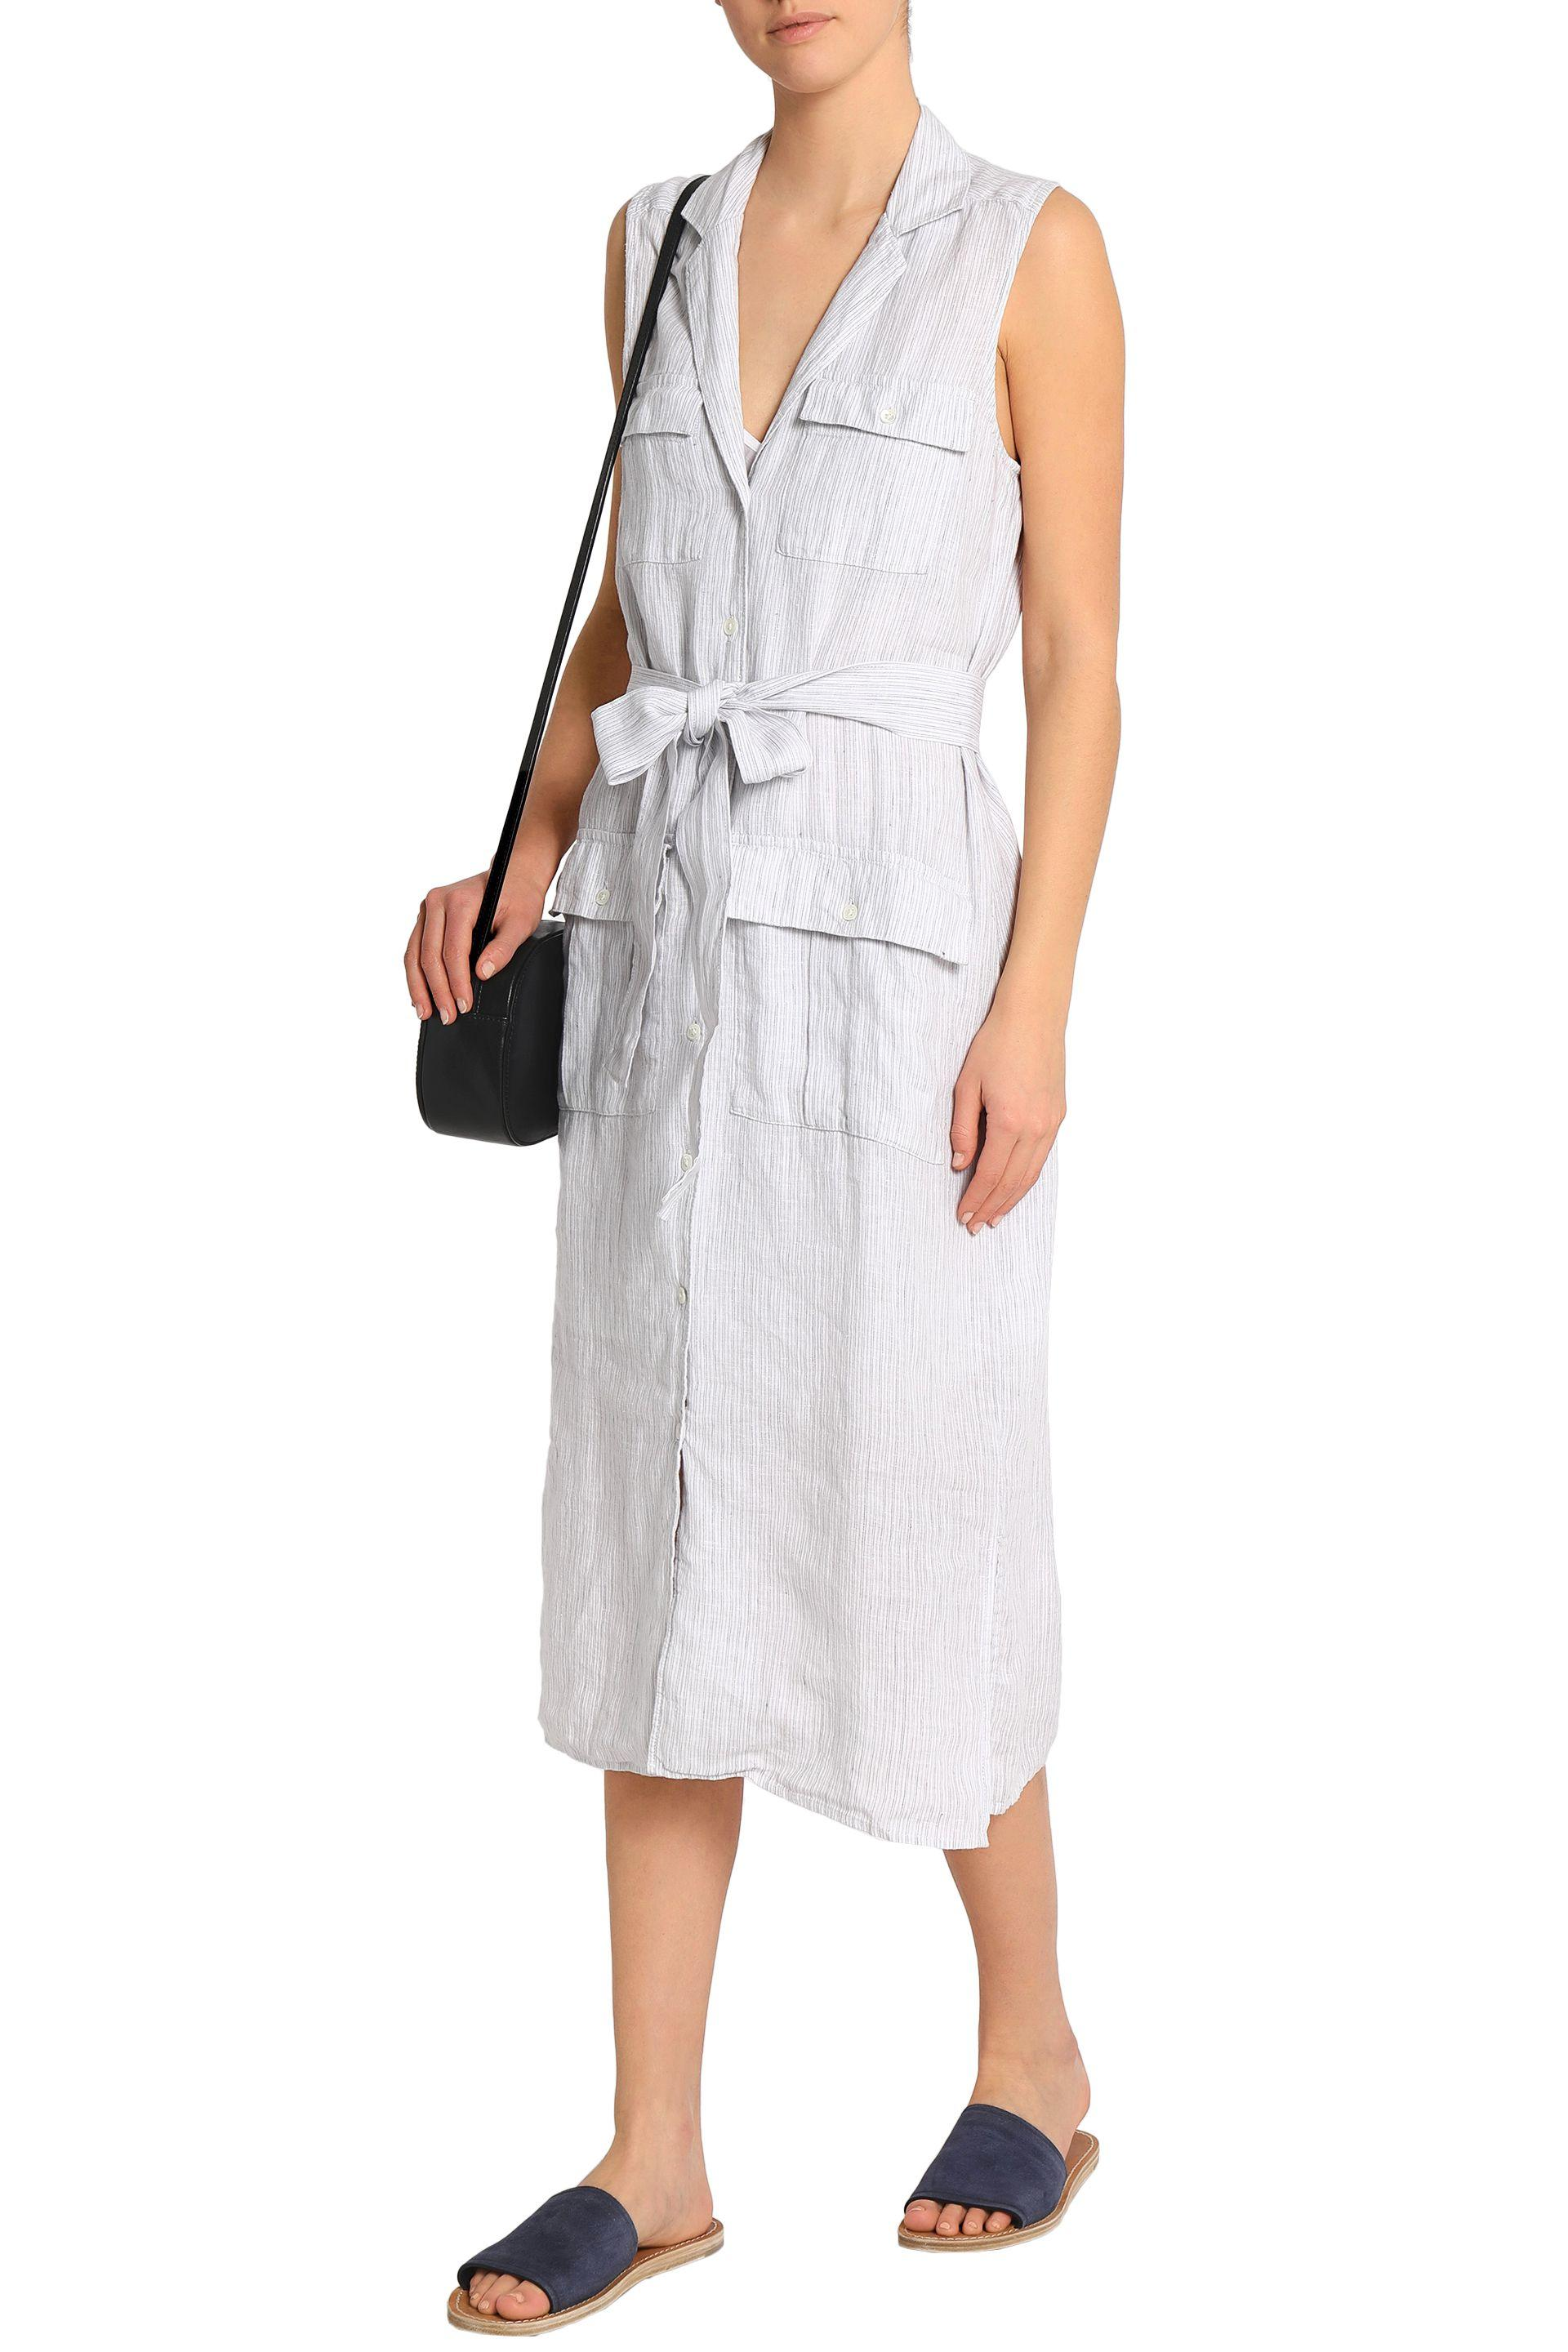 0b7e33fa397 James Perse - Woman Striped Linen Shirt Dress Off-white - Lyst. View  fullscreen